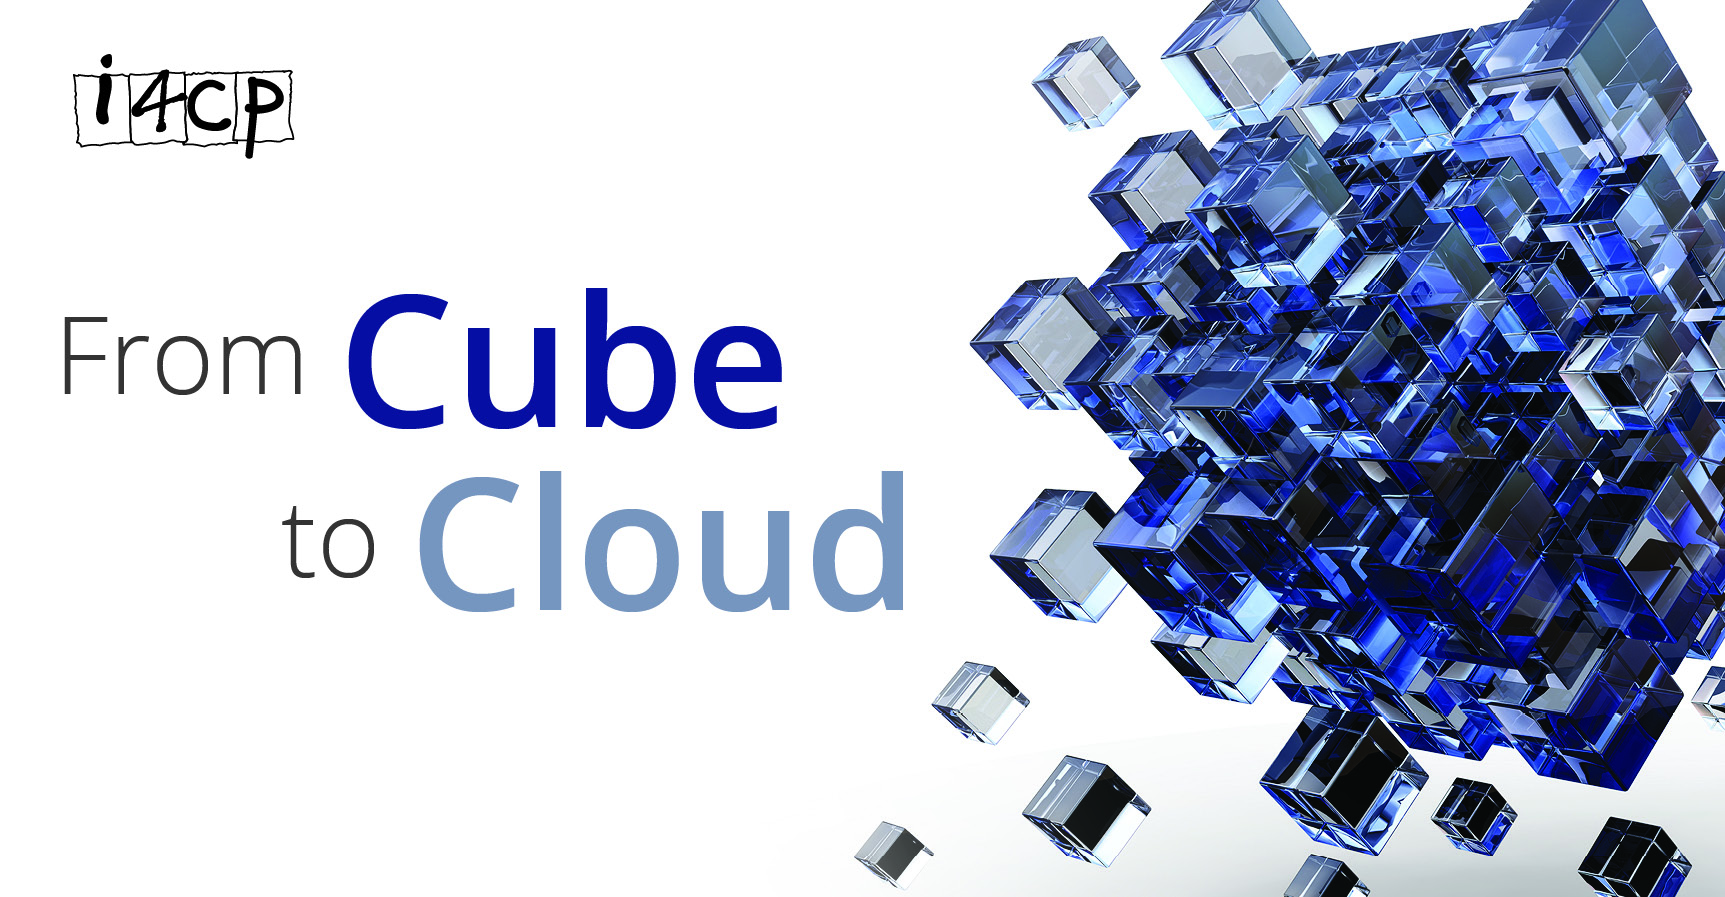 Cube to cloud